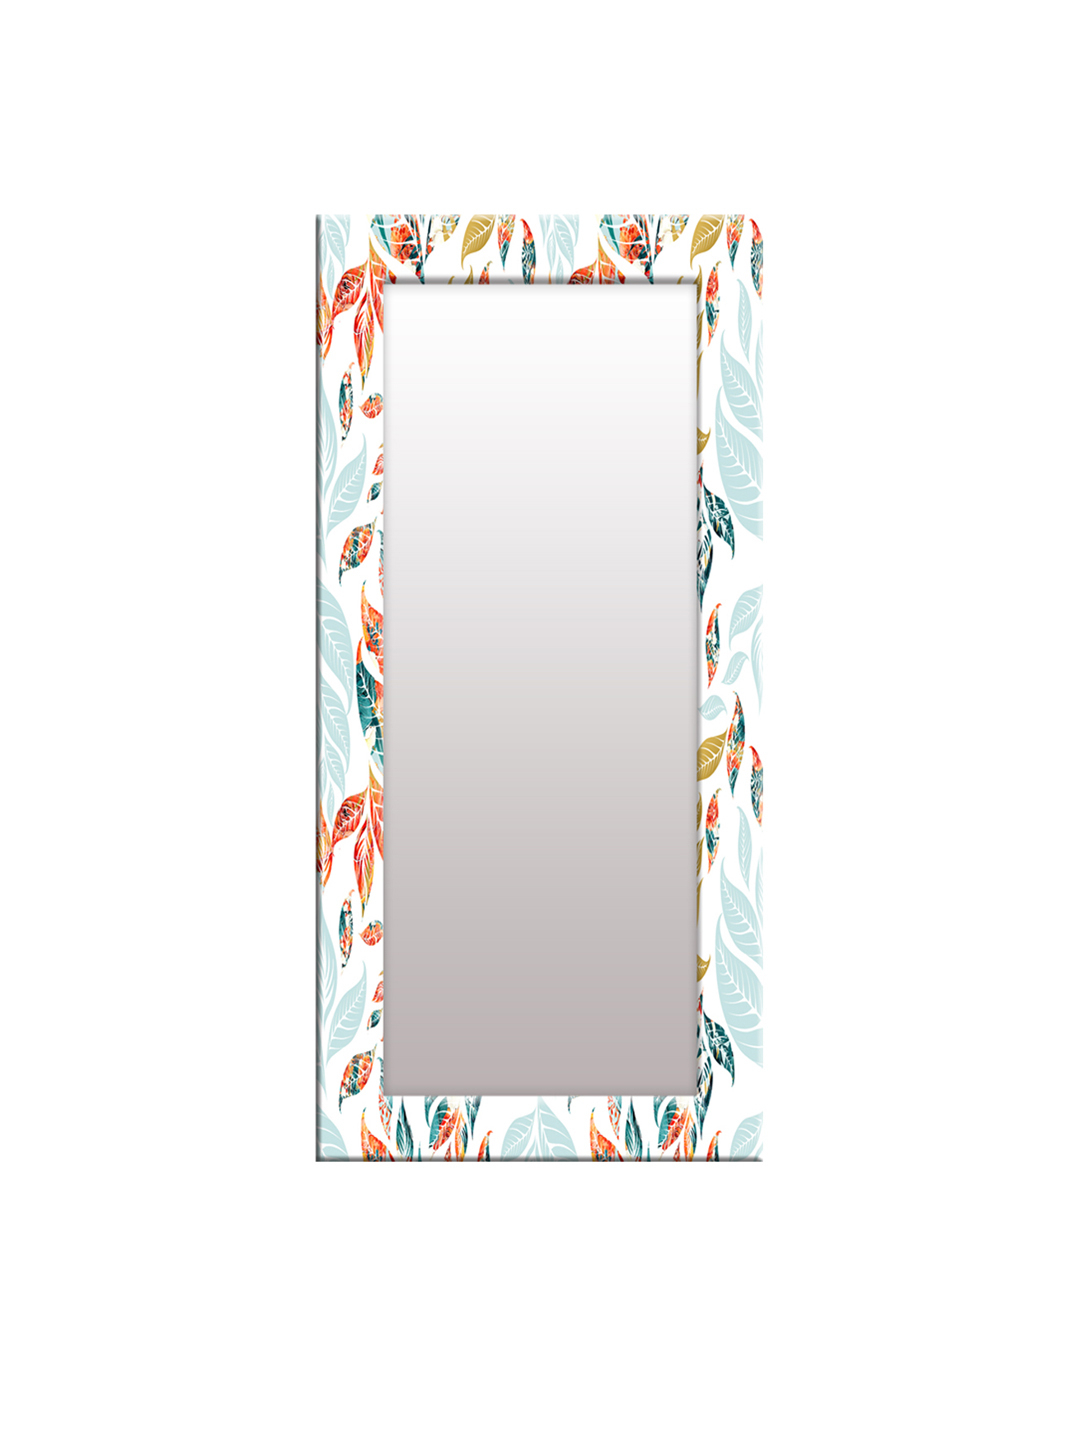 Orange Framed Wall Mirrors Throughout Current Buy 999store White & Orange Framed Wall Mirror – Mirrors For Unisex (View 13 of 20)